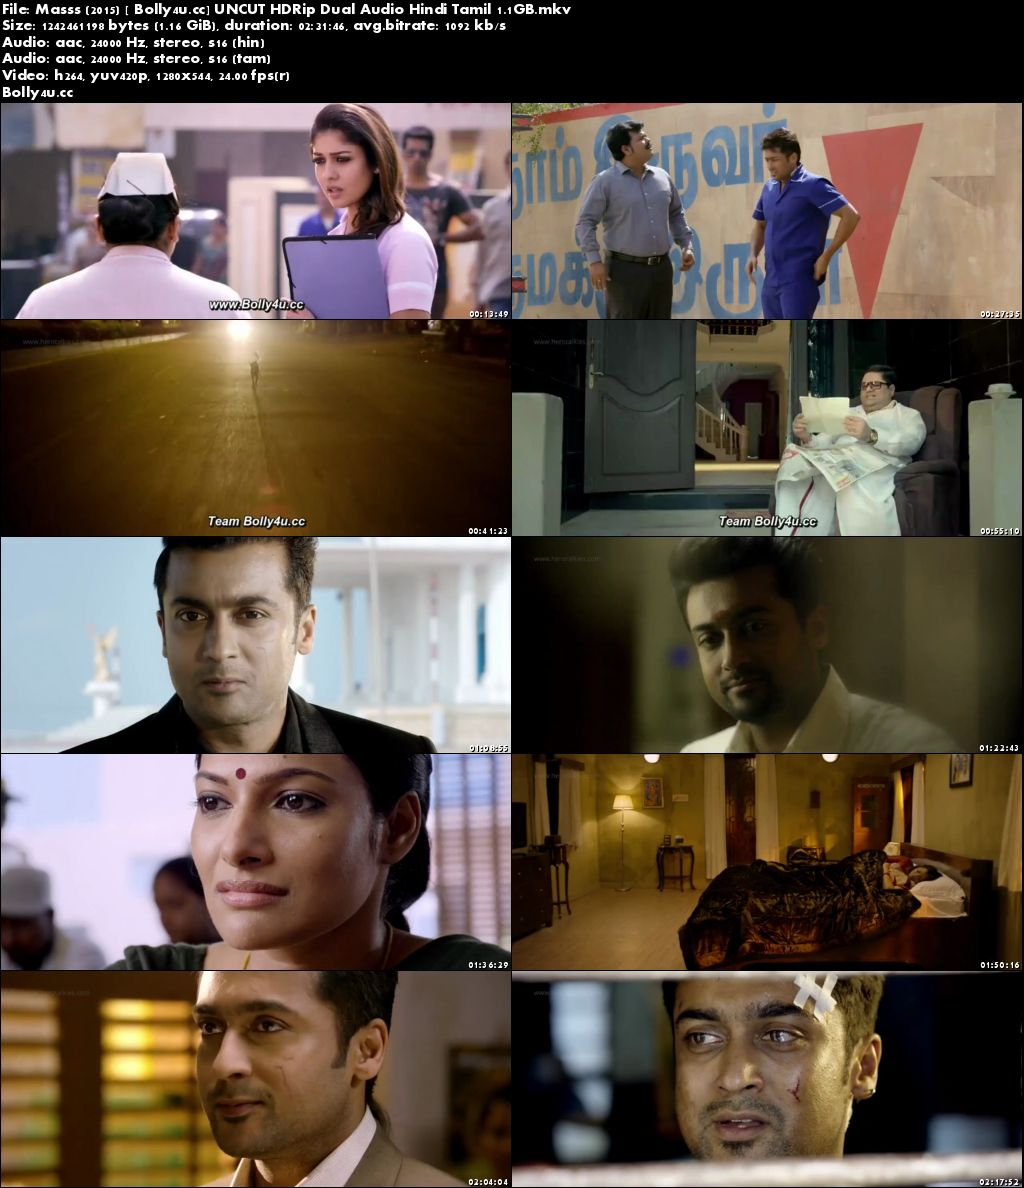 Masss 2015 UNCUT HDRip 1GB Hindi Dual Audio 720p Download